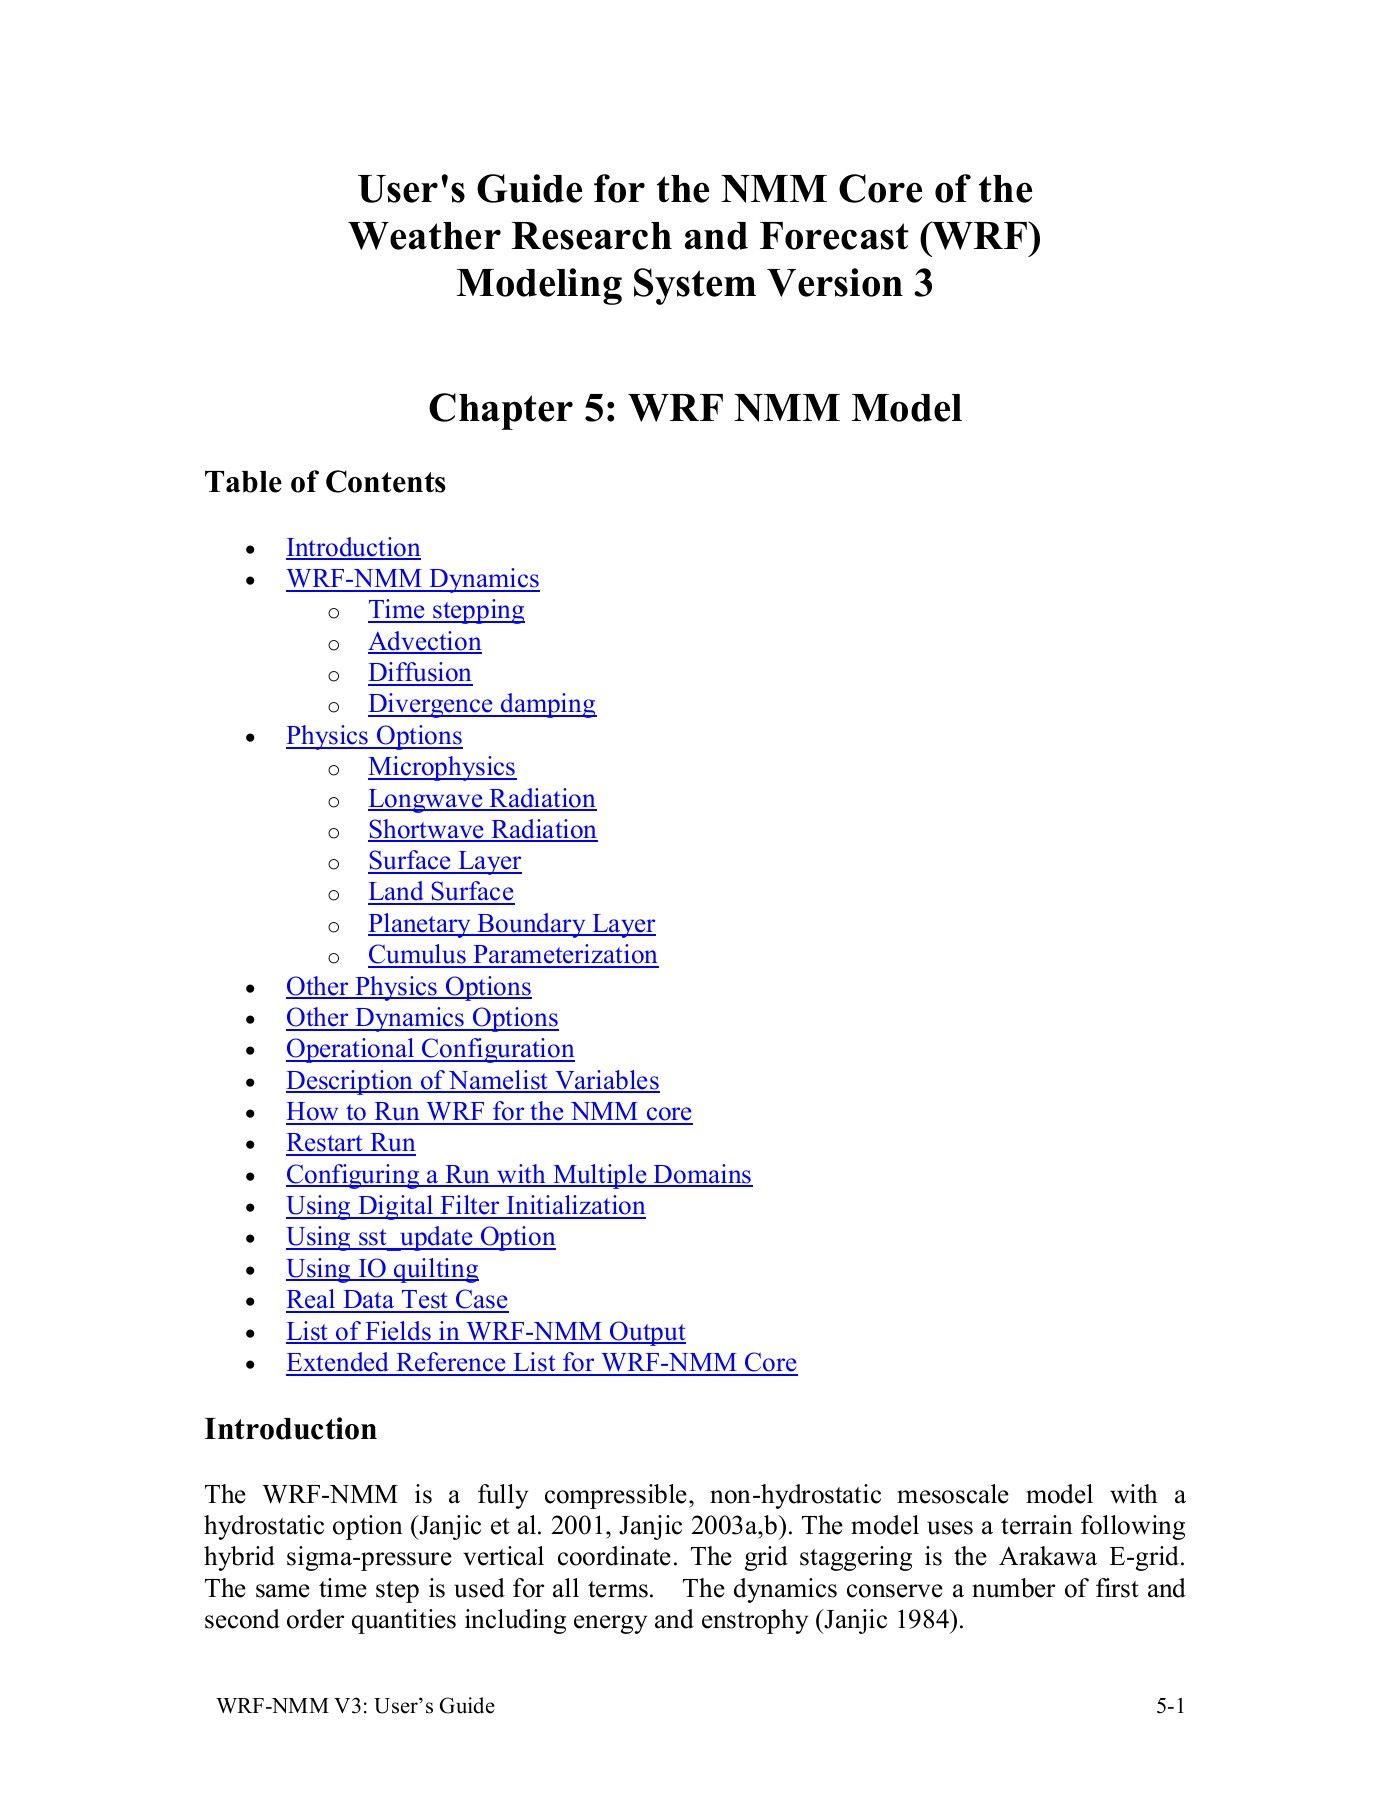 Chapter 5: WRF Model - Developmental Testbed Center Pages 1